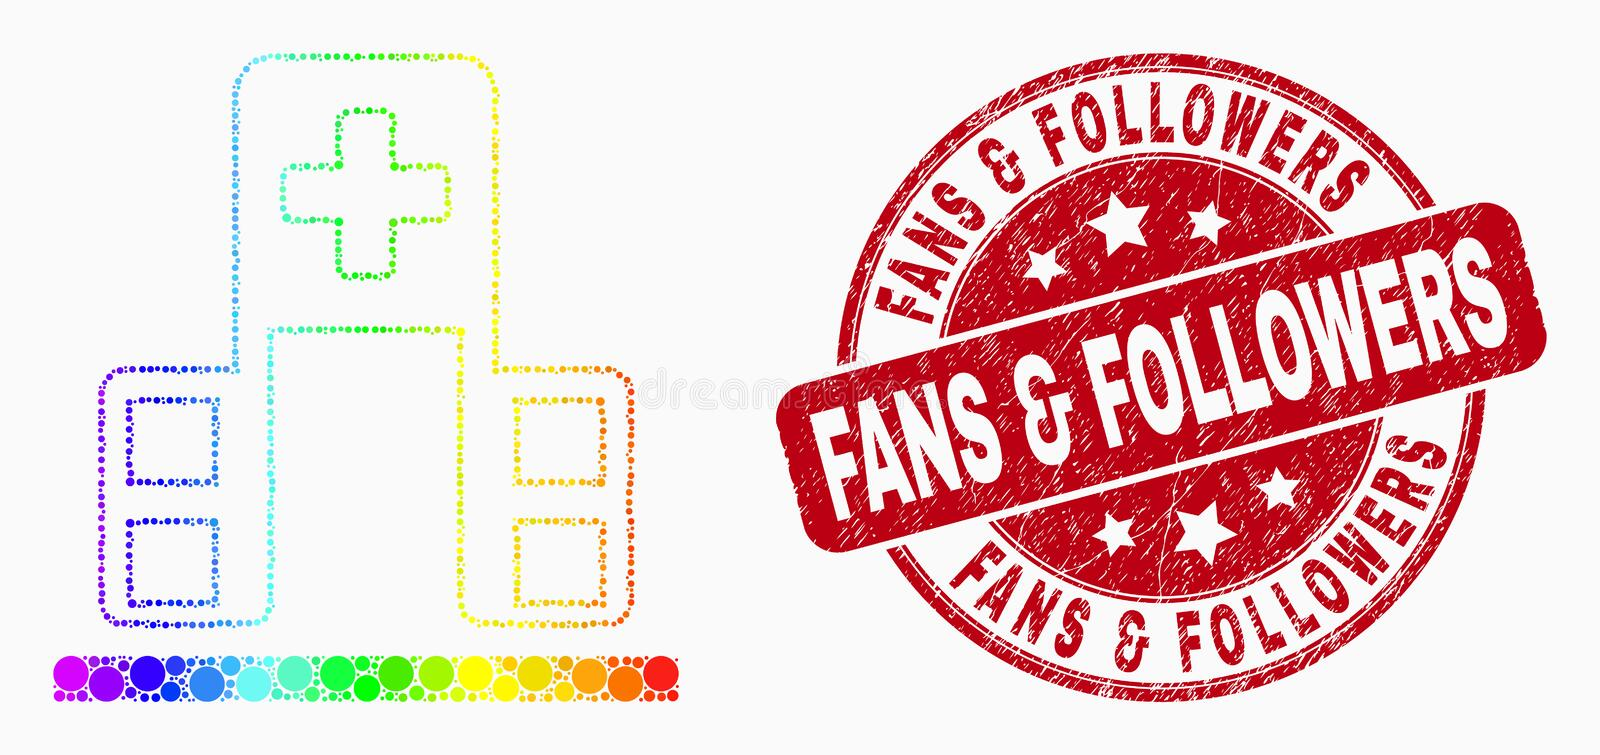 Vector Spectrum Dot Hospital Building Icon and Grunge Fans and Followers Stamp Seal stock illustration